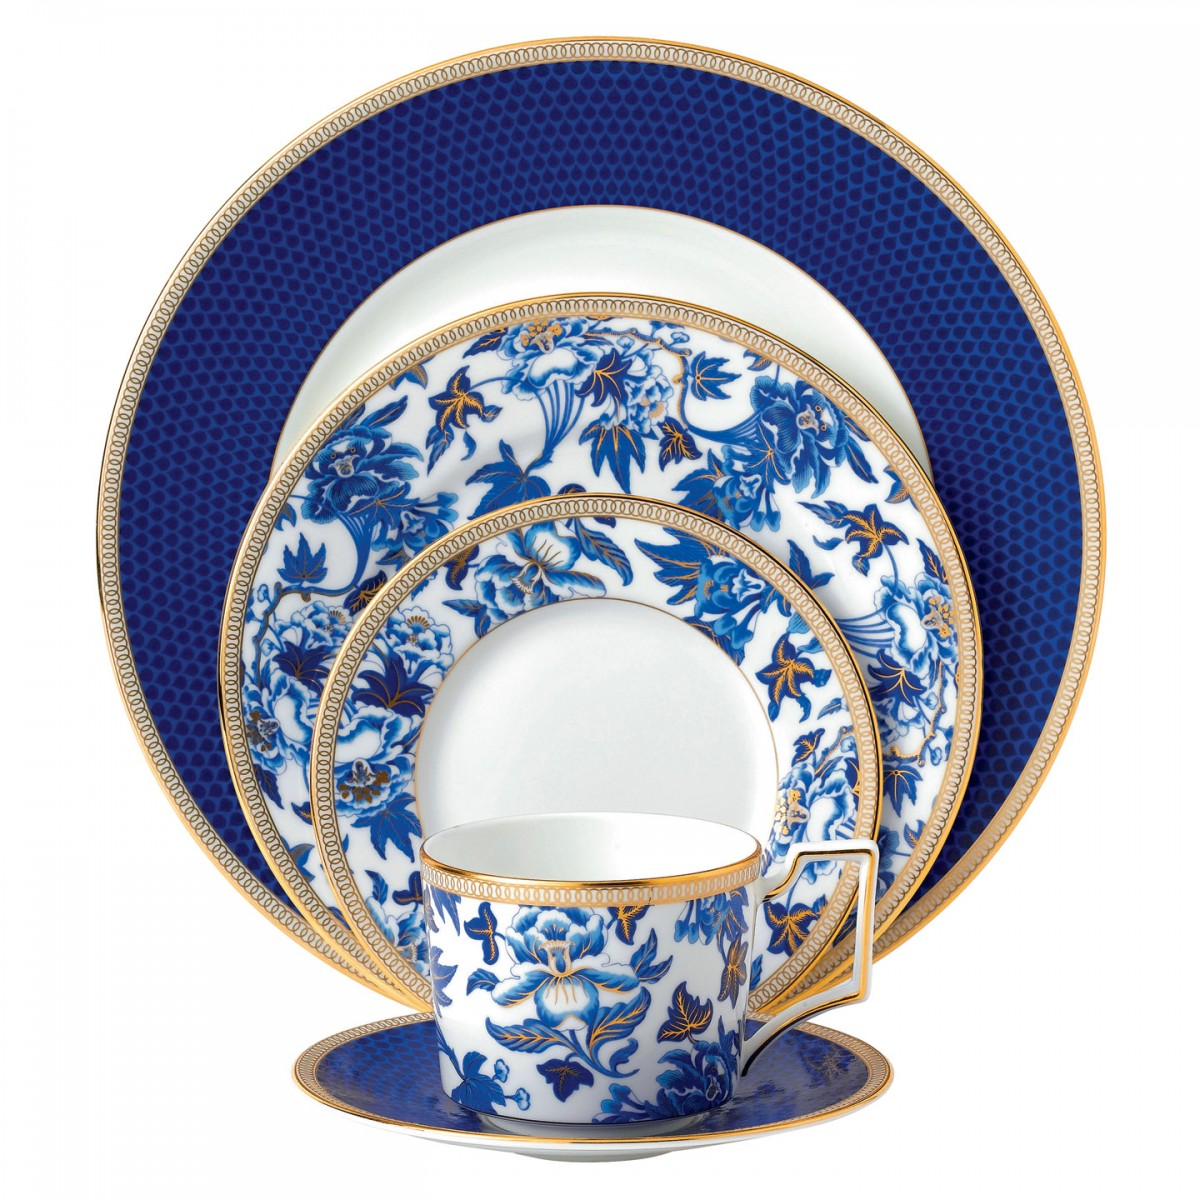 wedgwood-hibiscus-5-piece-place-setting-701587159500.jpg